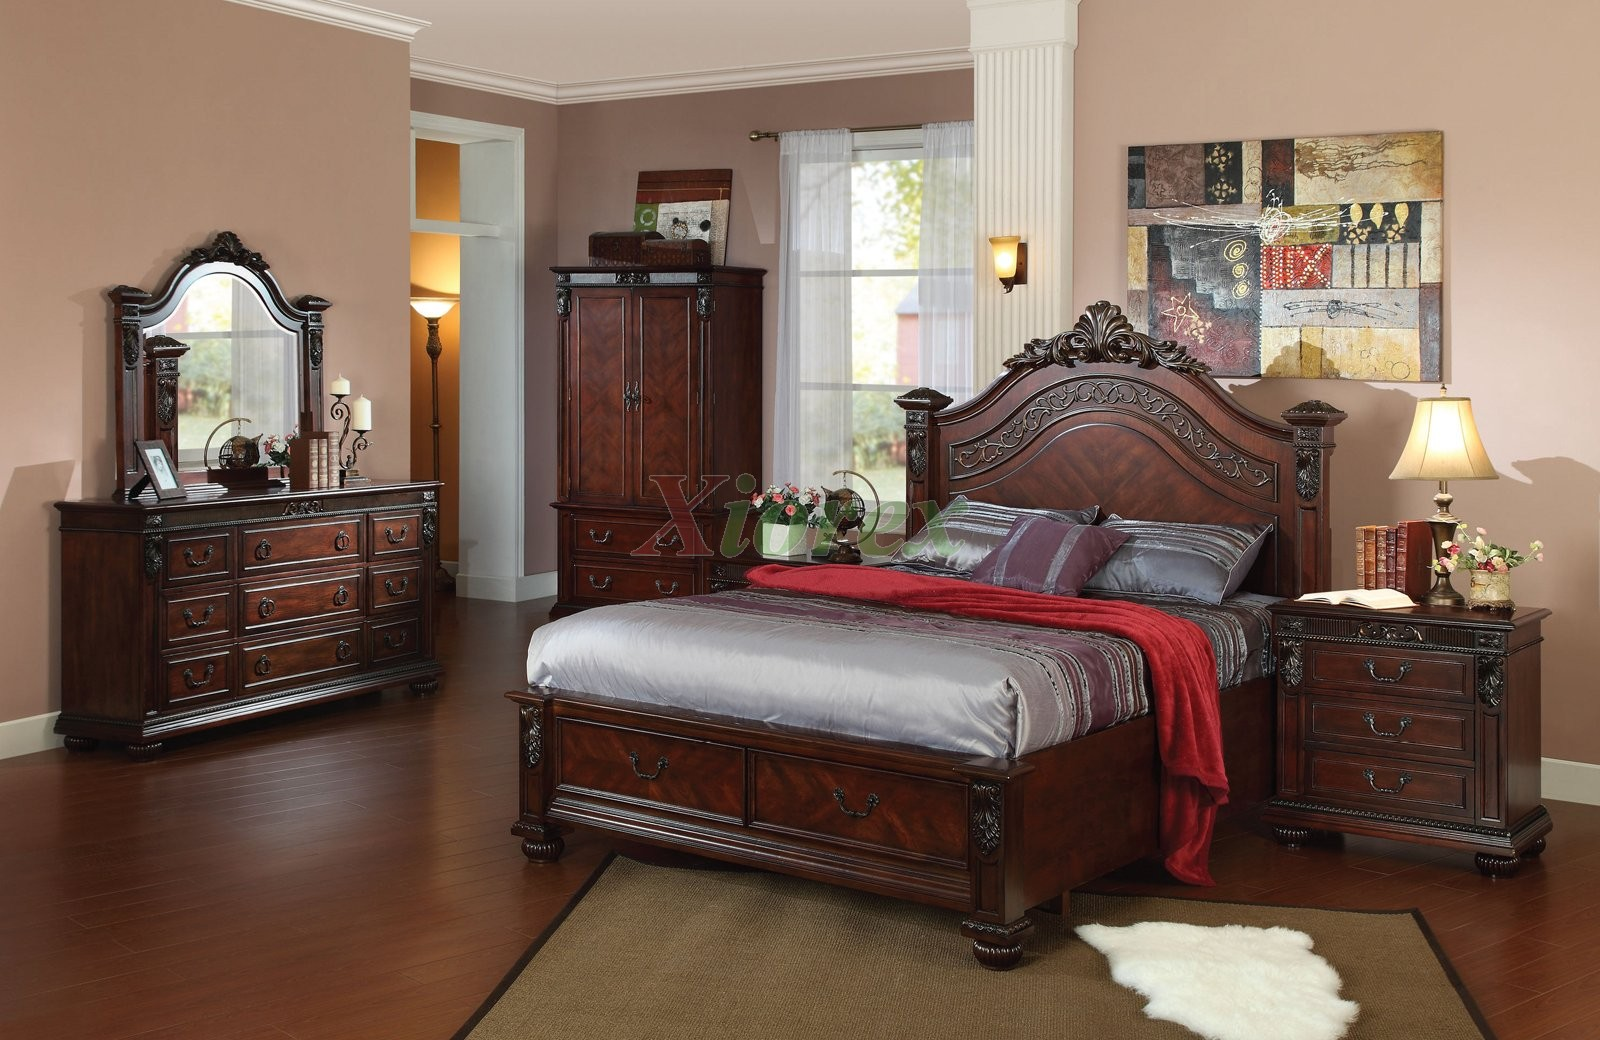 Bedroom Furniture Set 109 w Arched Headboard Queen Bed ...